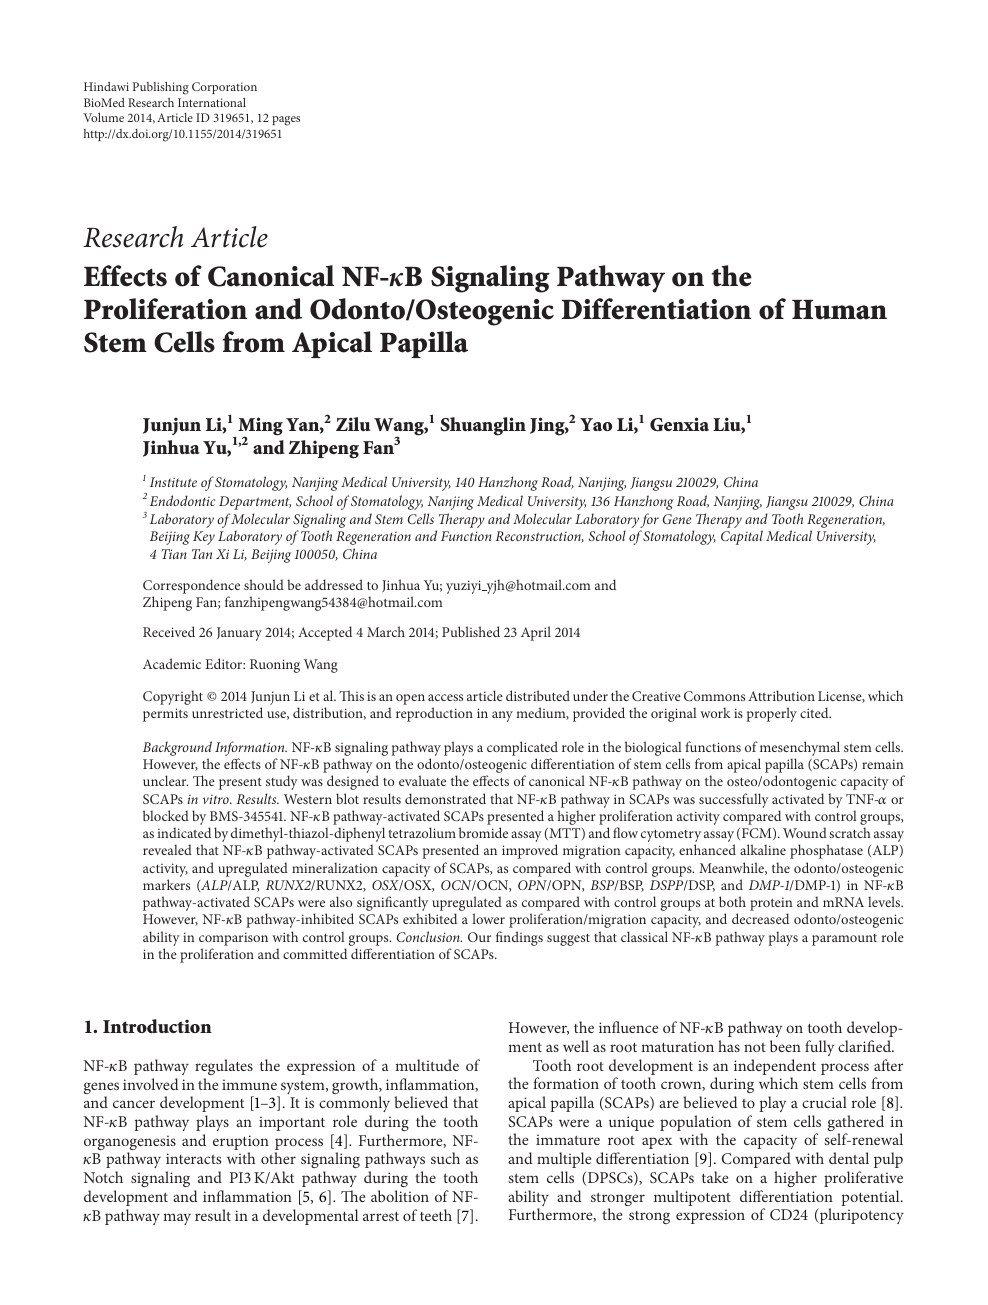 Effects of Canonical NF-κB Signaling Pathway on the